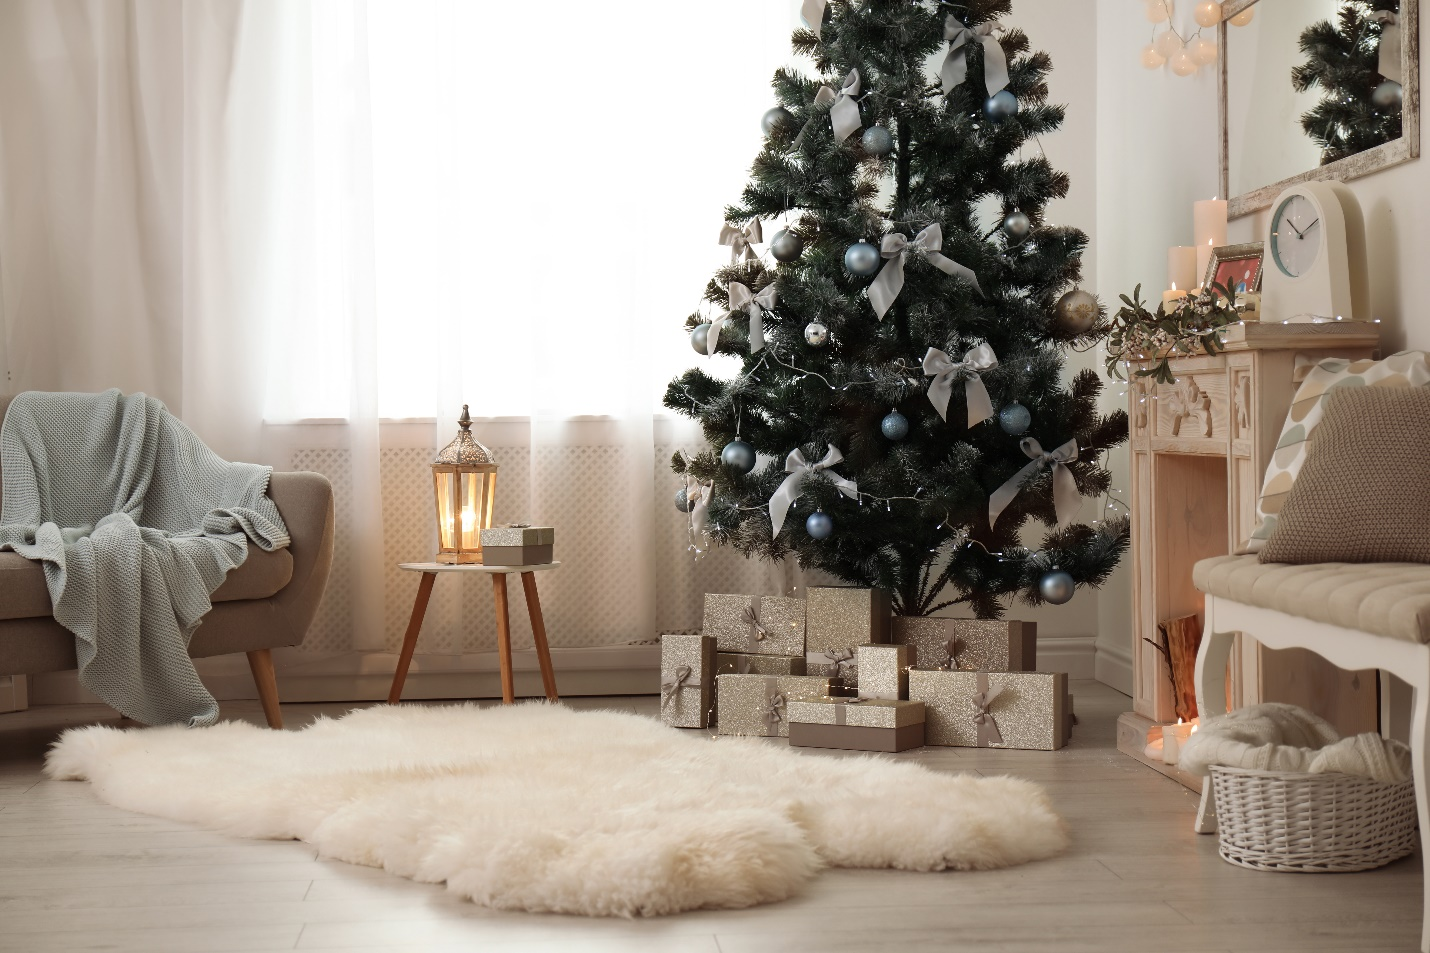 Cozy living room with small Christmas tree and presents under it